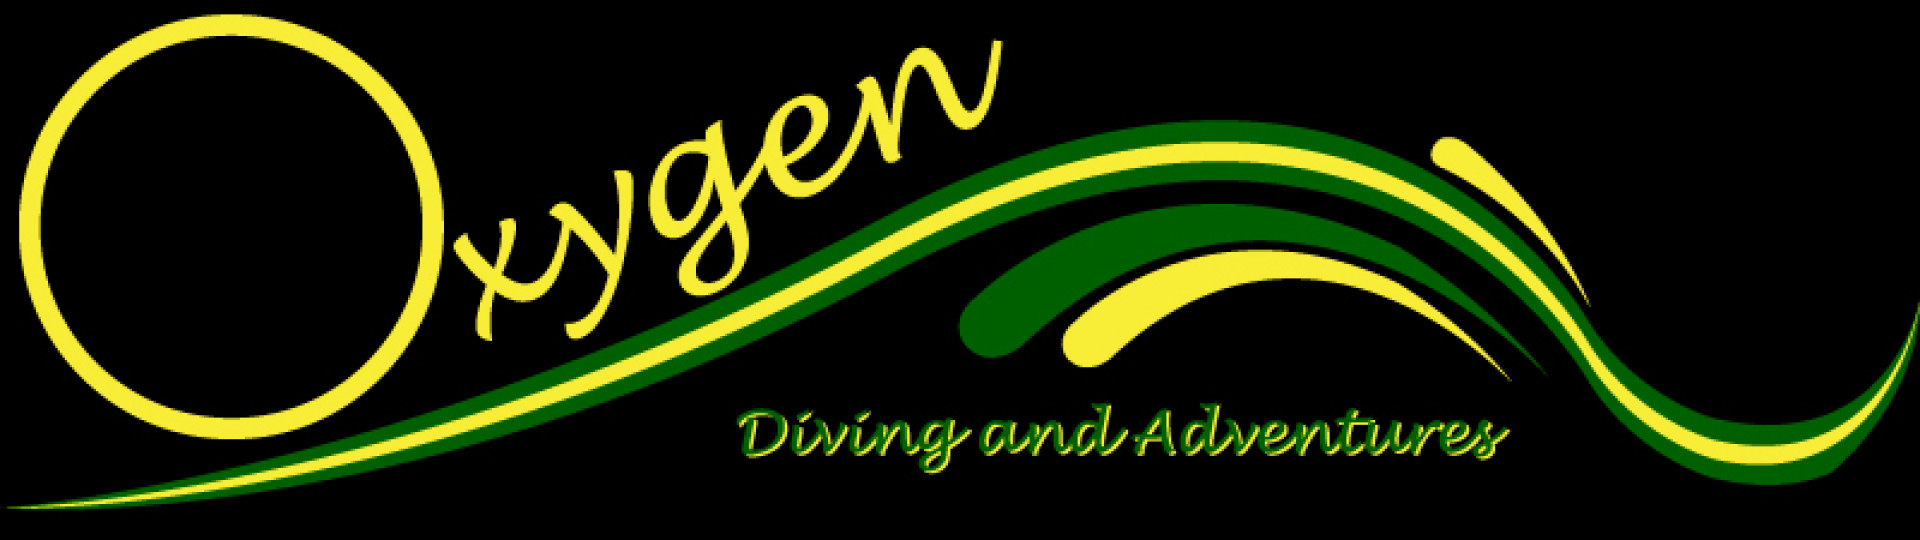 Oxygen Diving and adventures